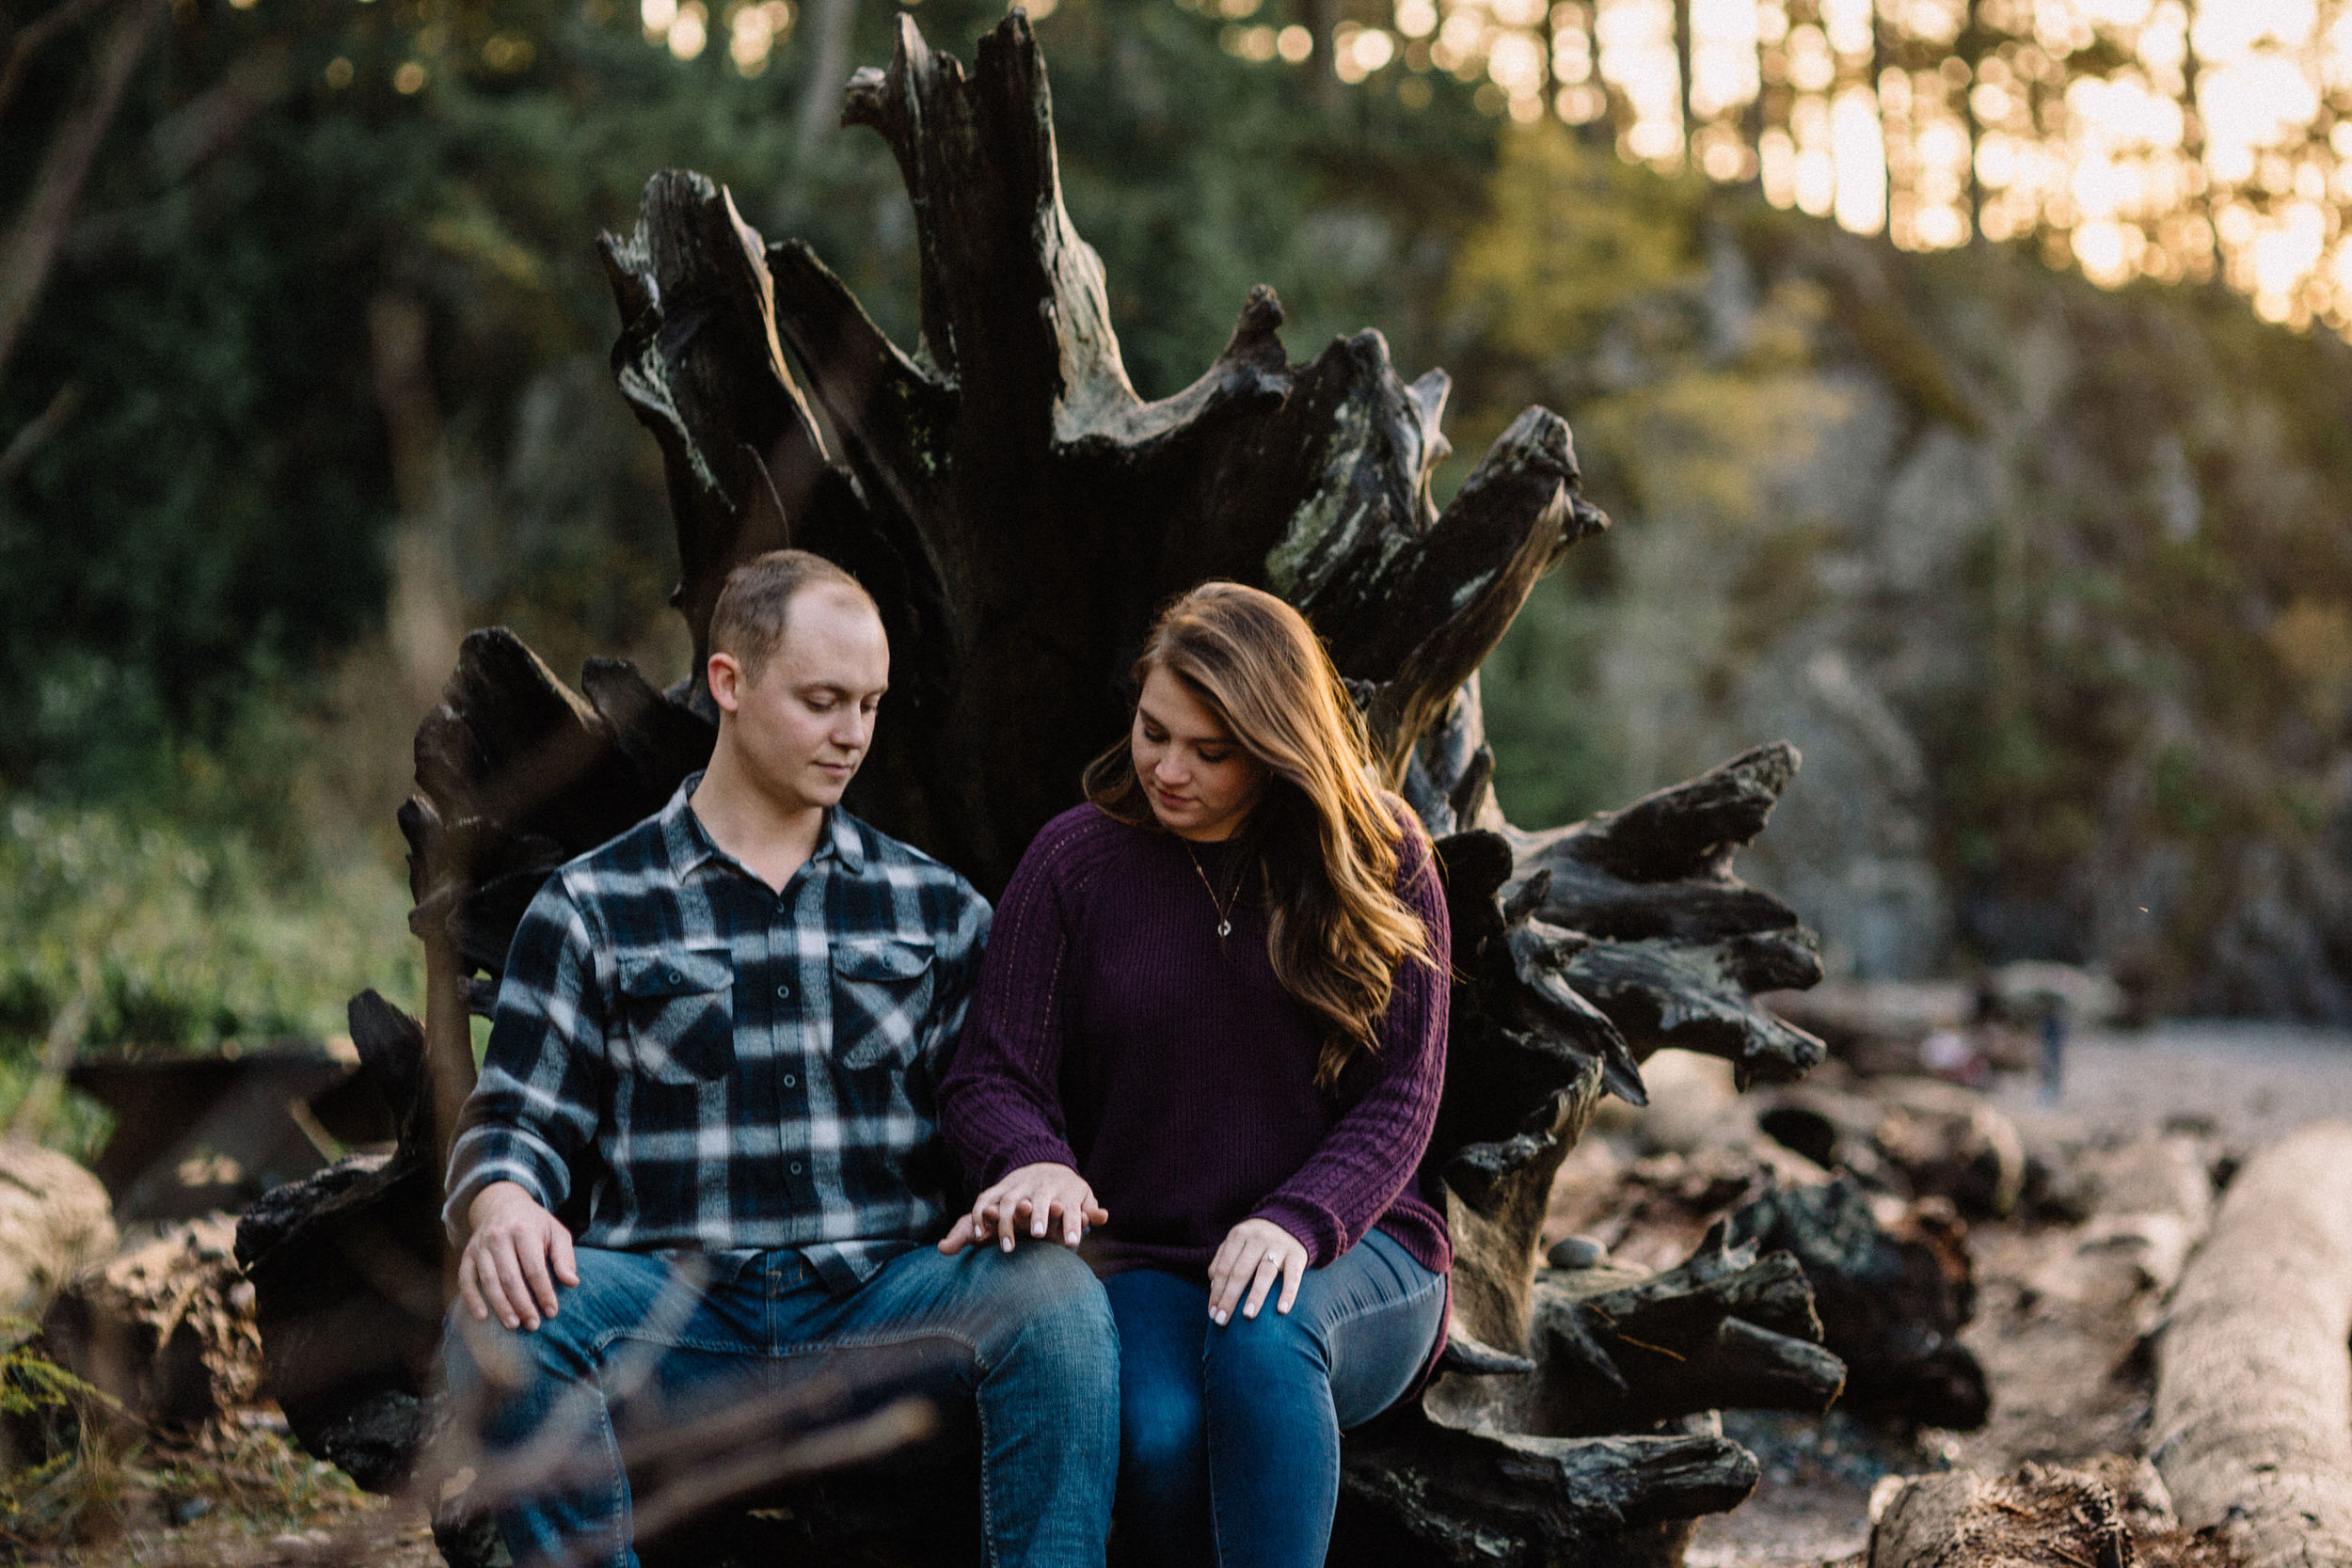 Deception Pass engagement photography Seattle washington0023.JPG